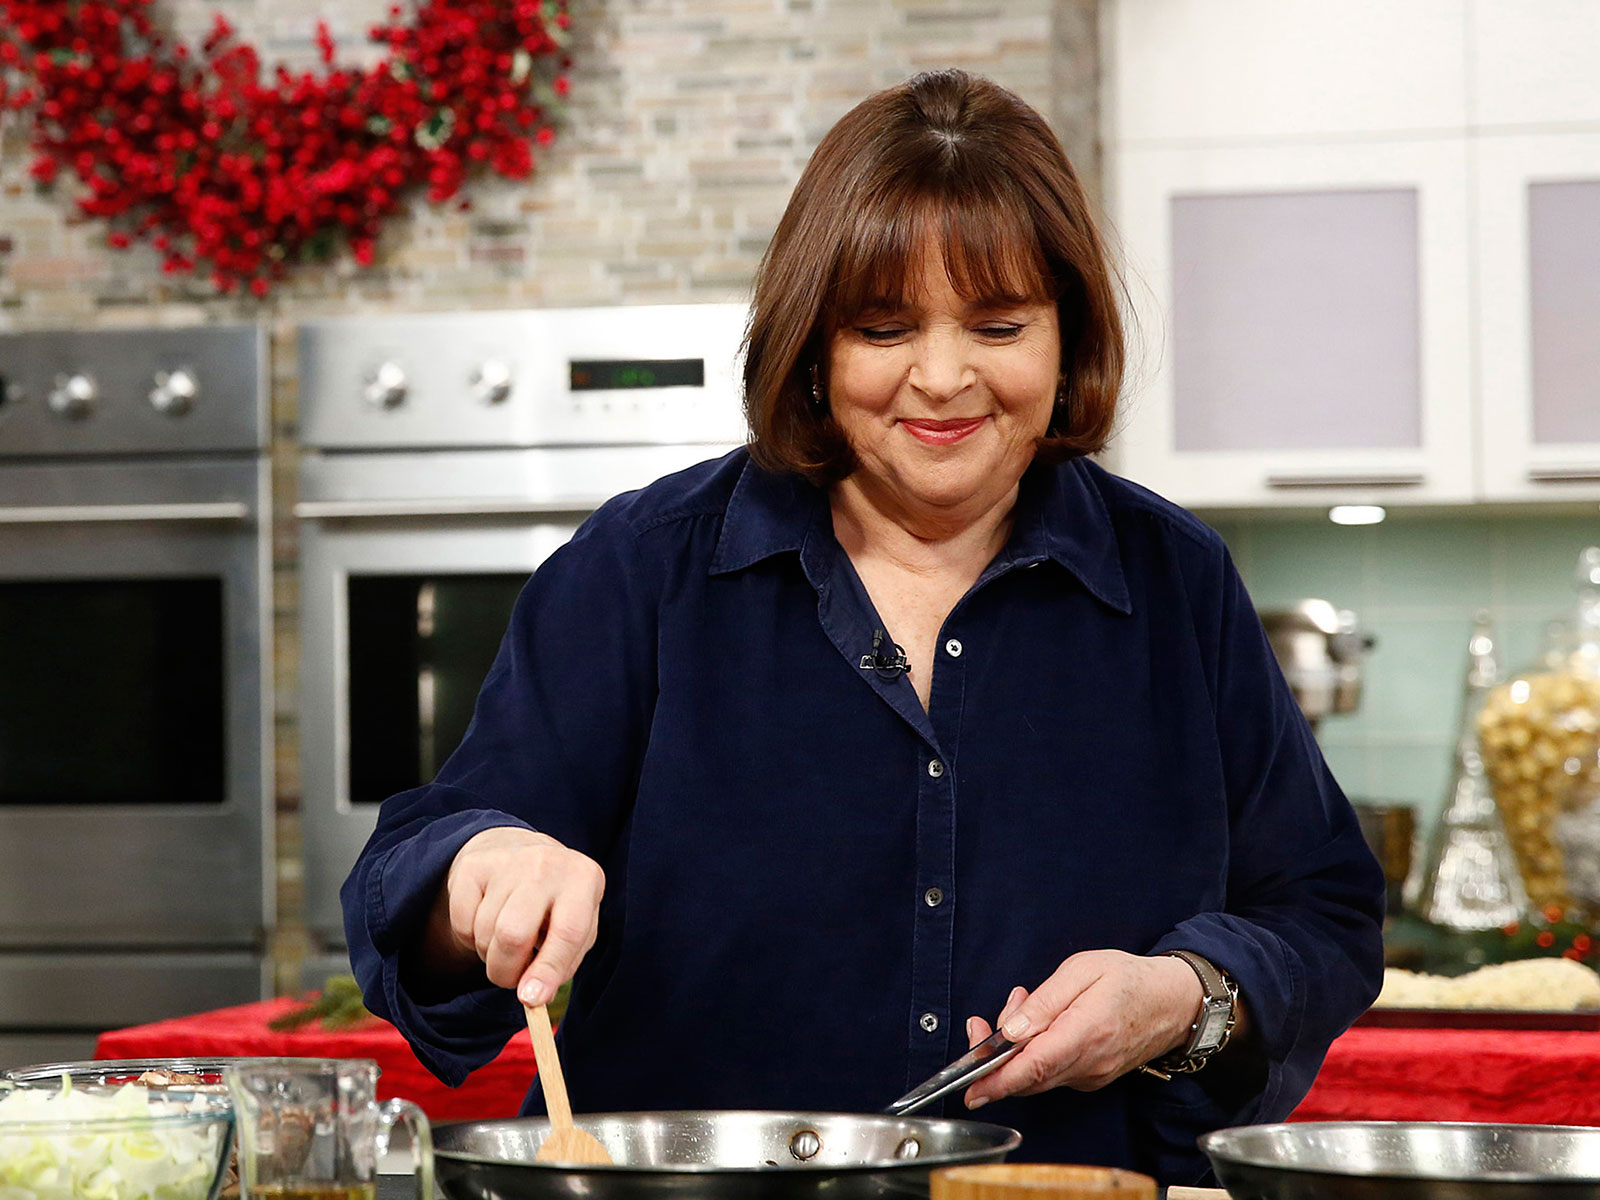 Ina Garten's Genius Tip for Making Perfect Chocolate Curls